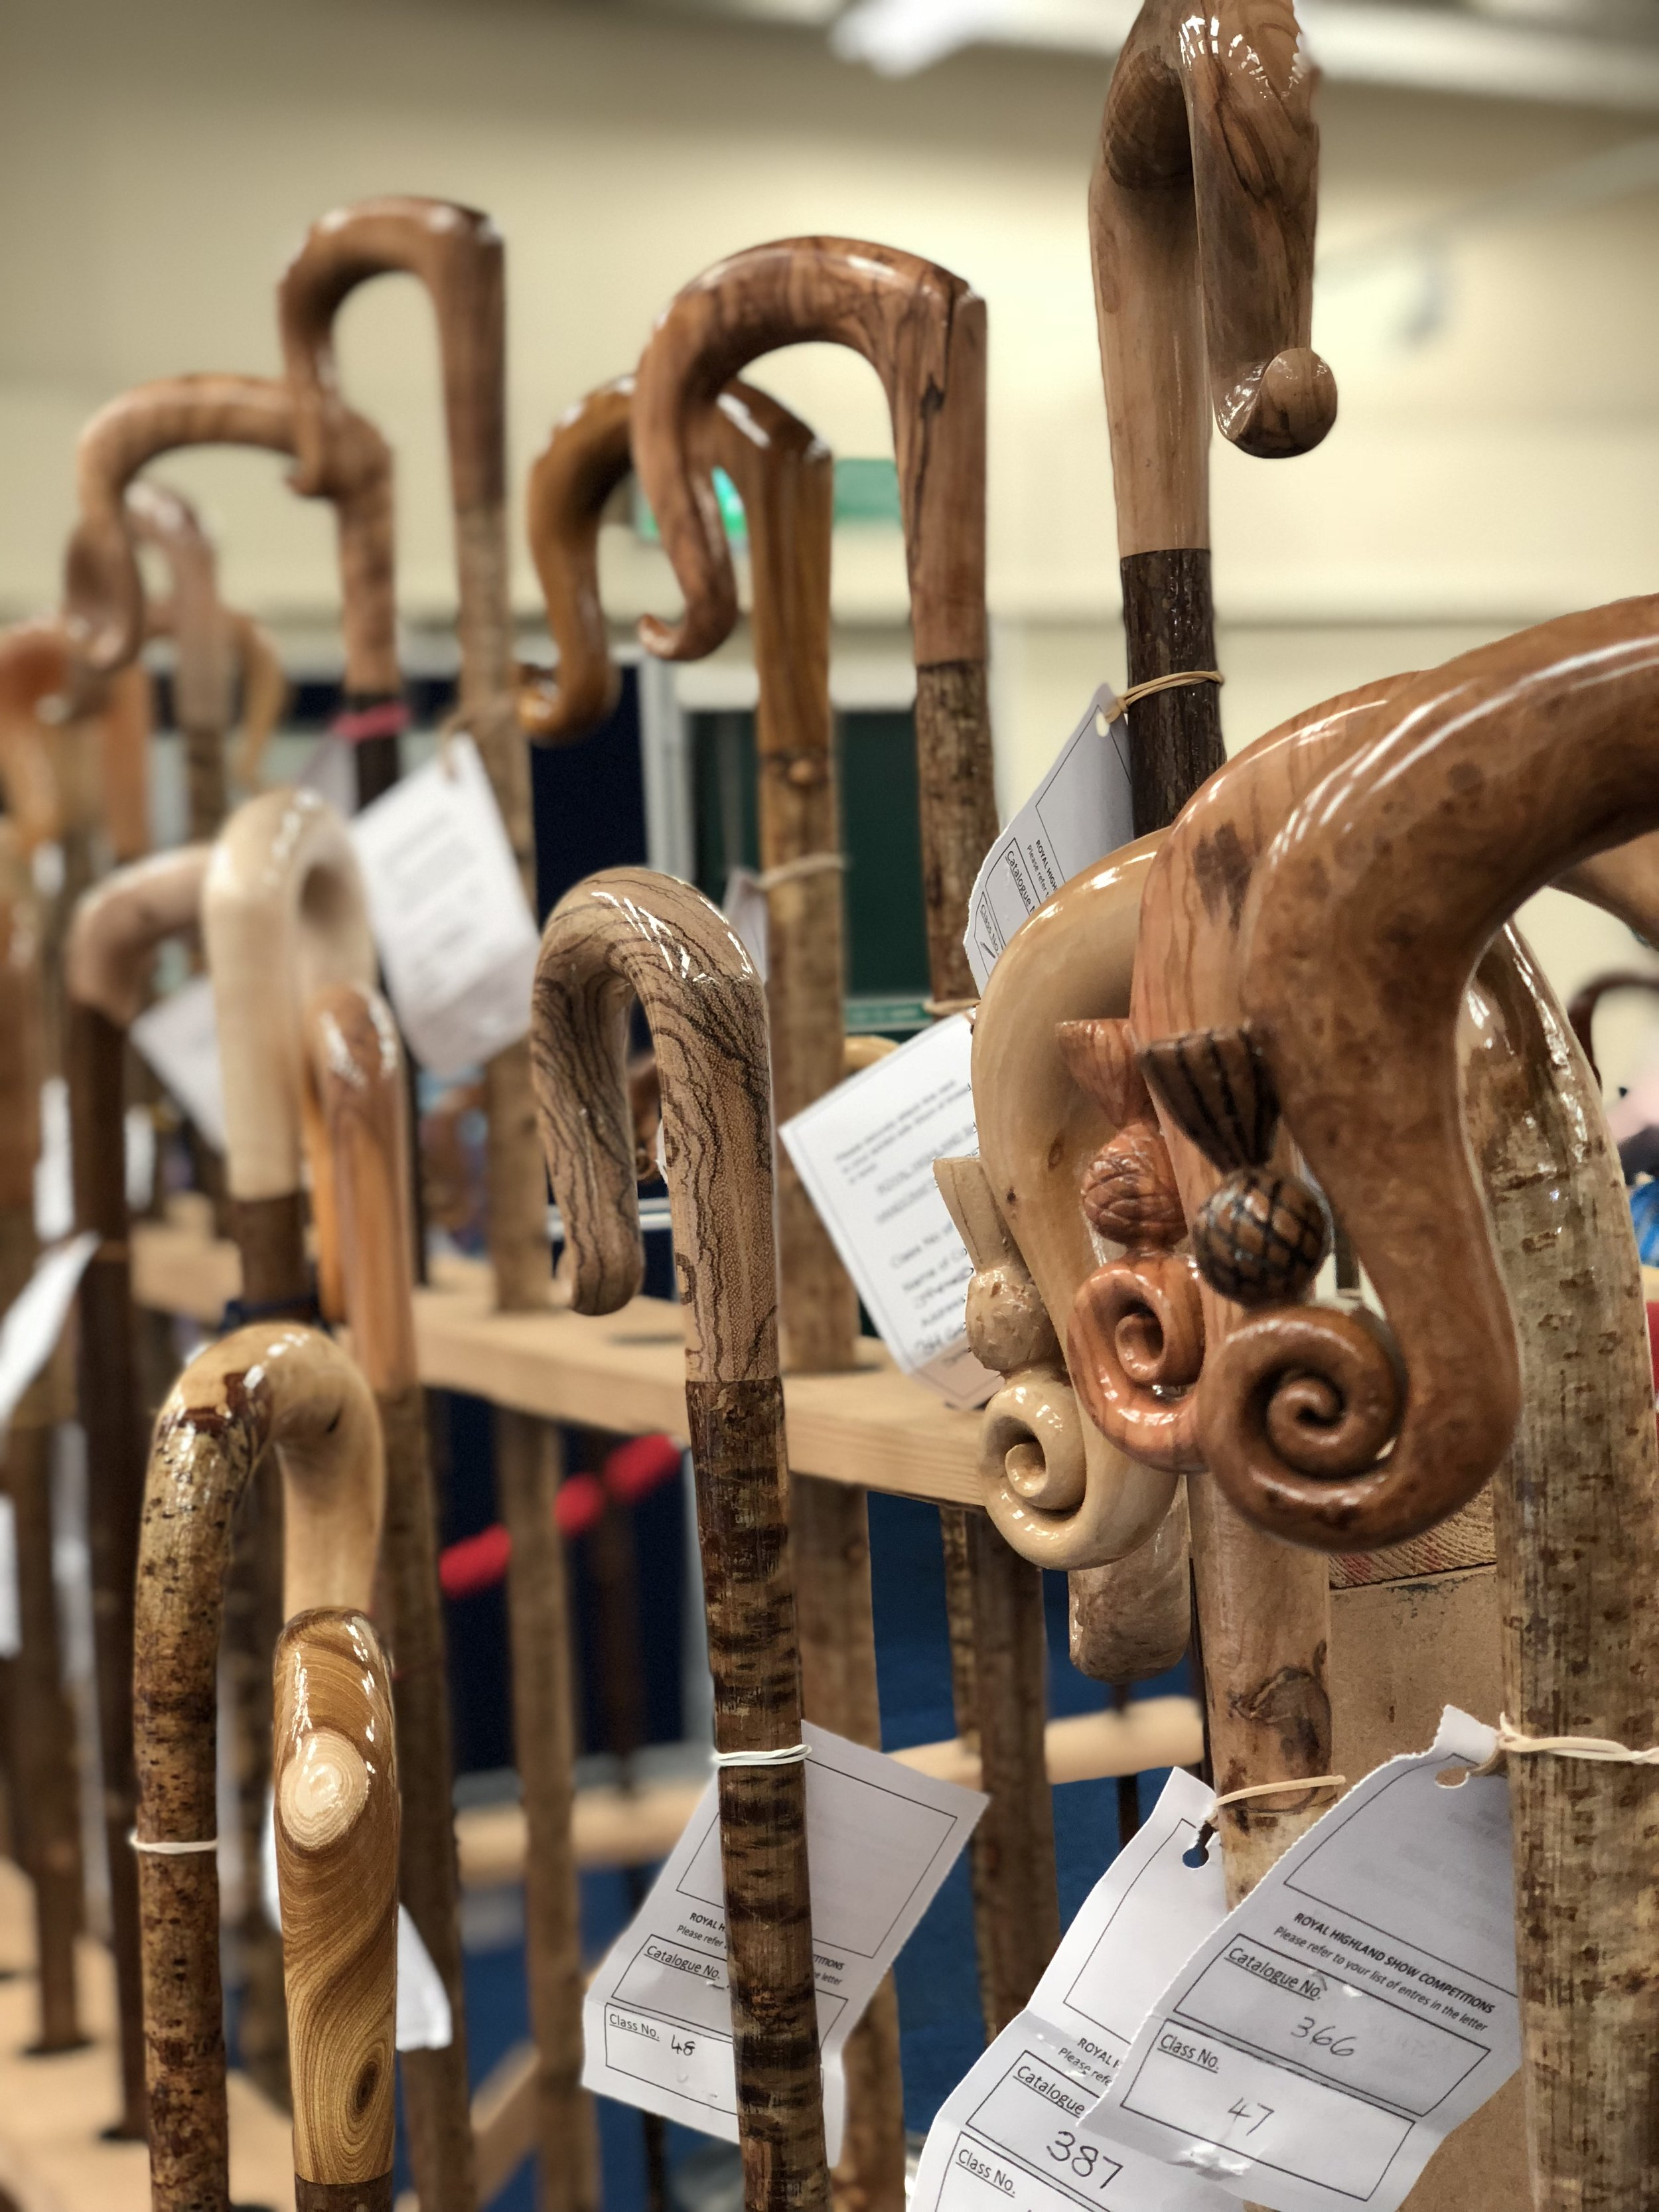 Shepherds crook carving competition entries